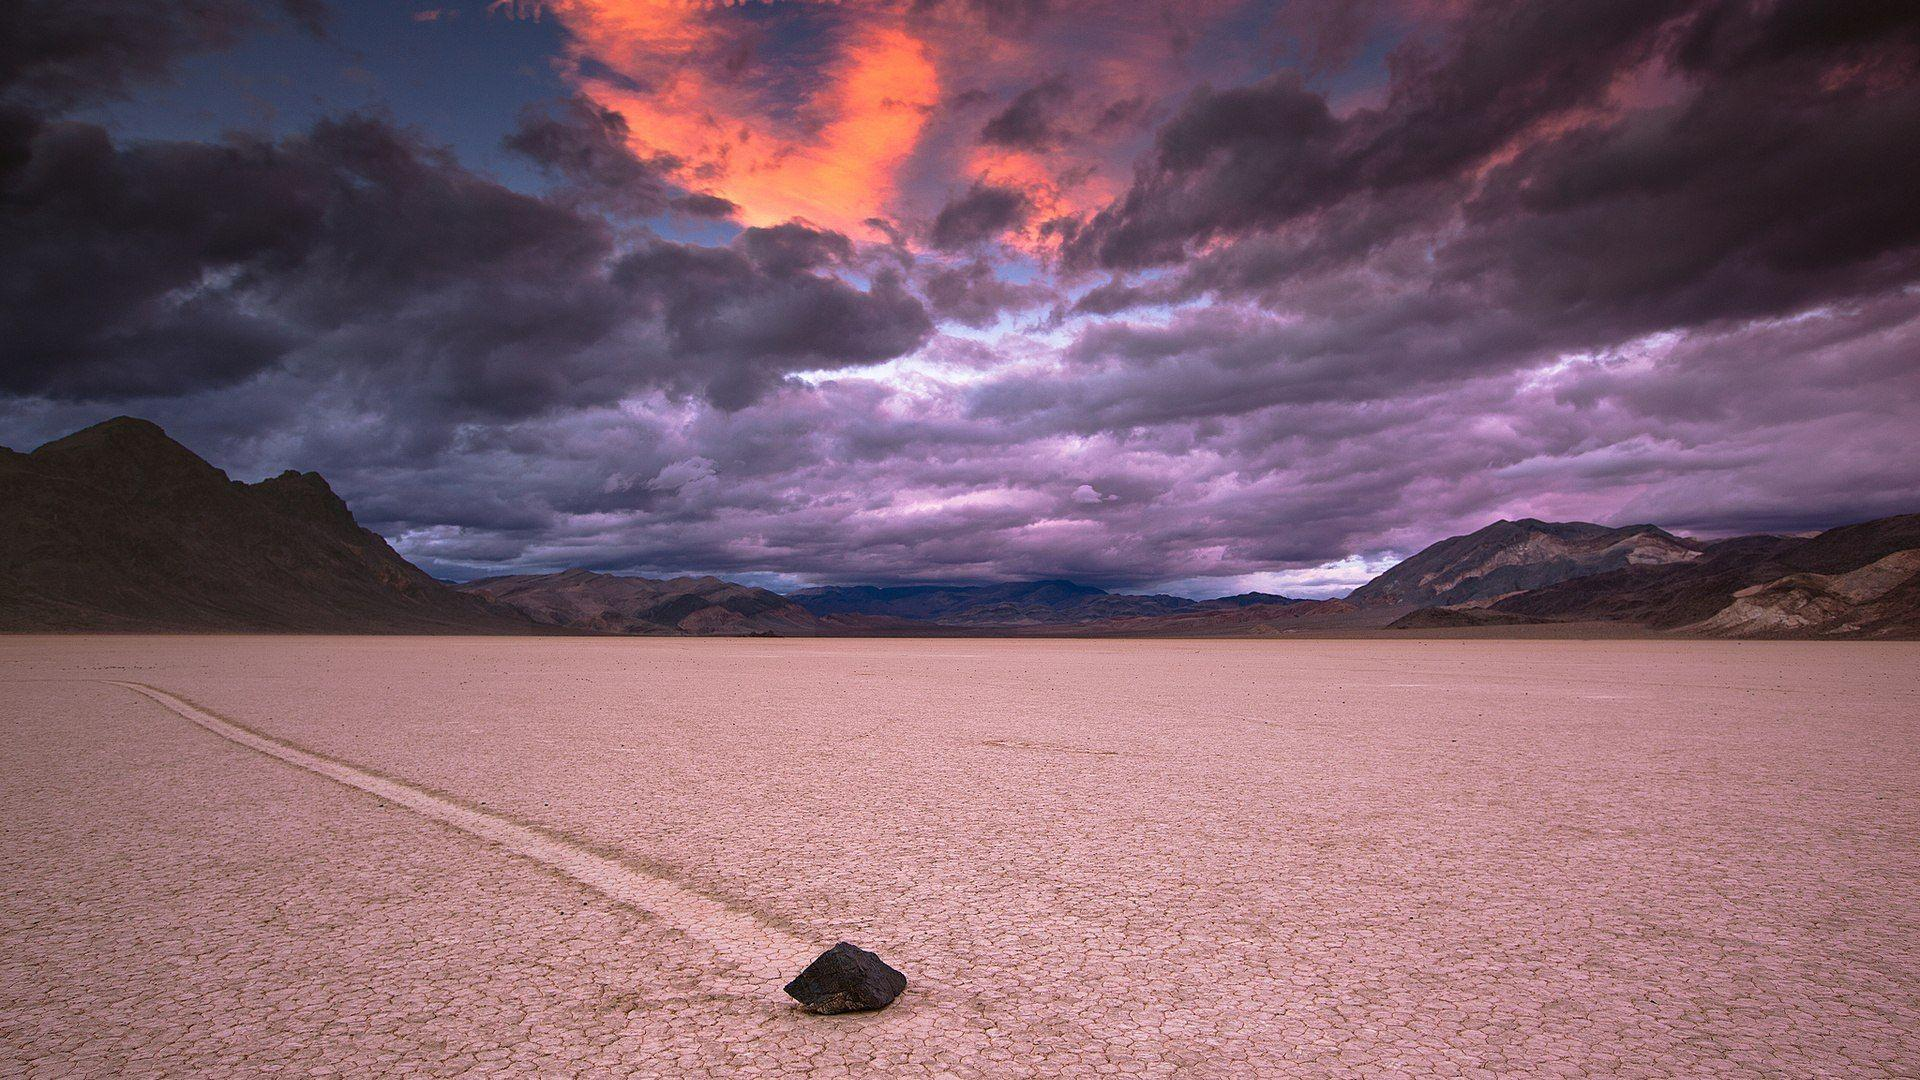 Death Valley National Park, California wallpapers and image